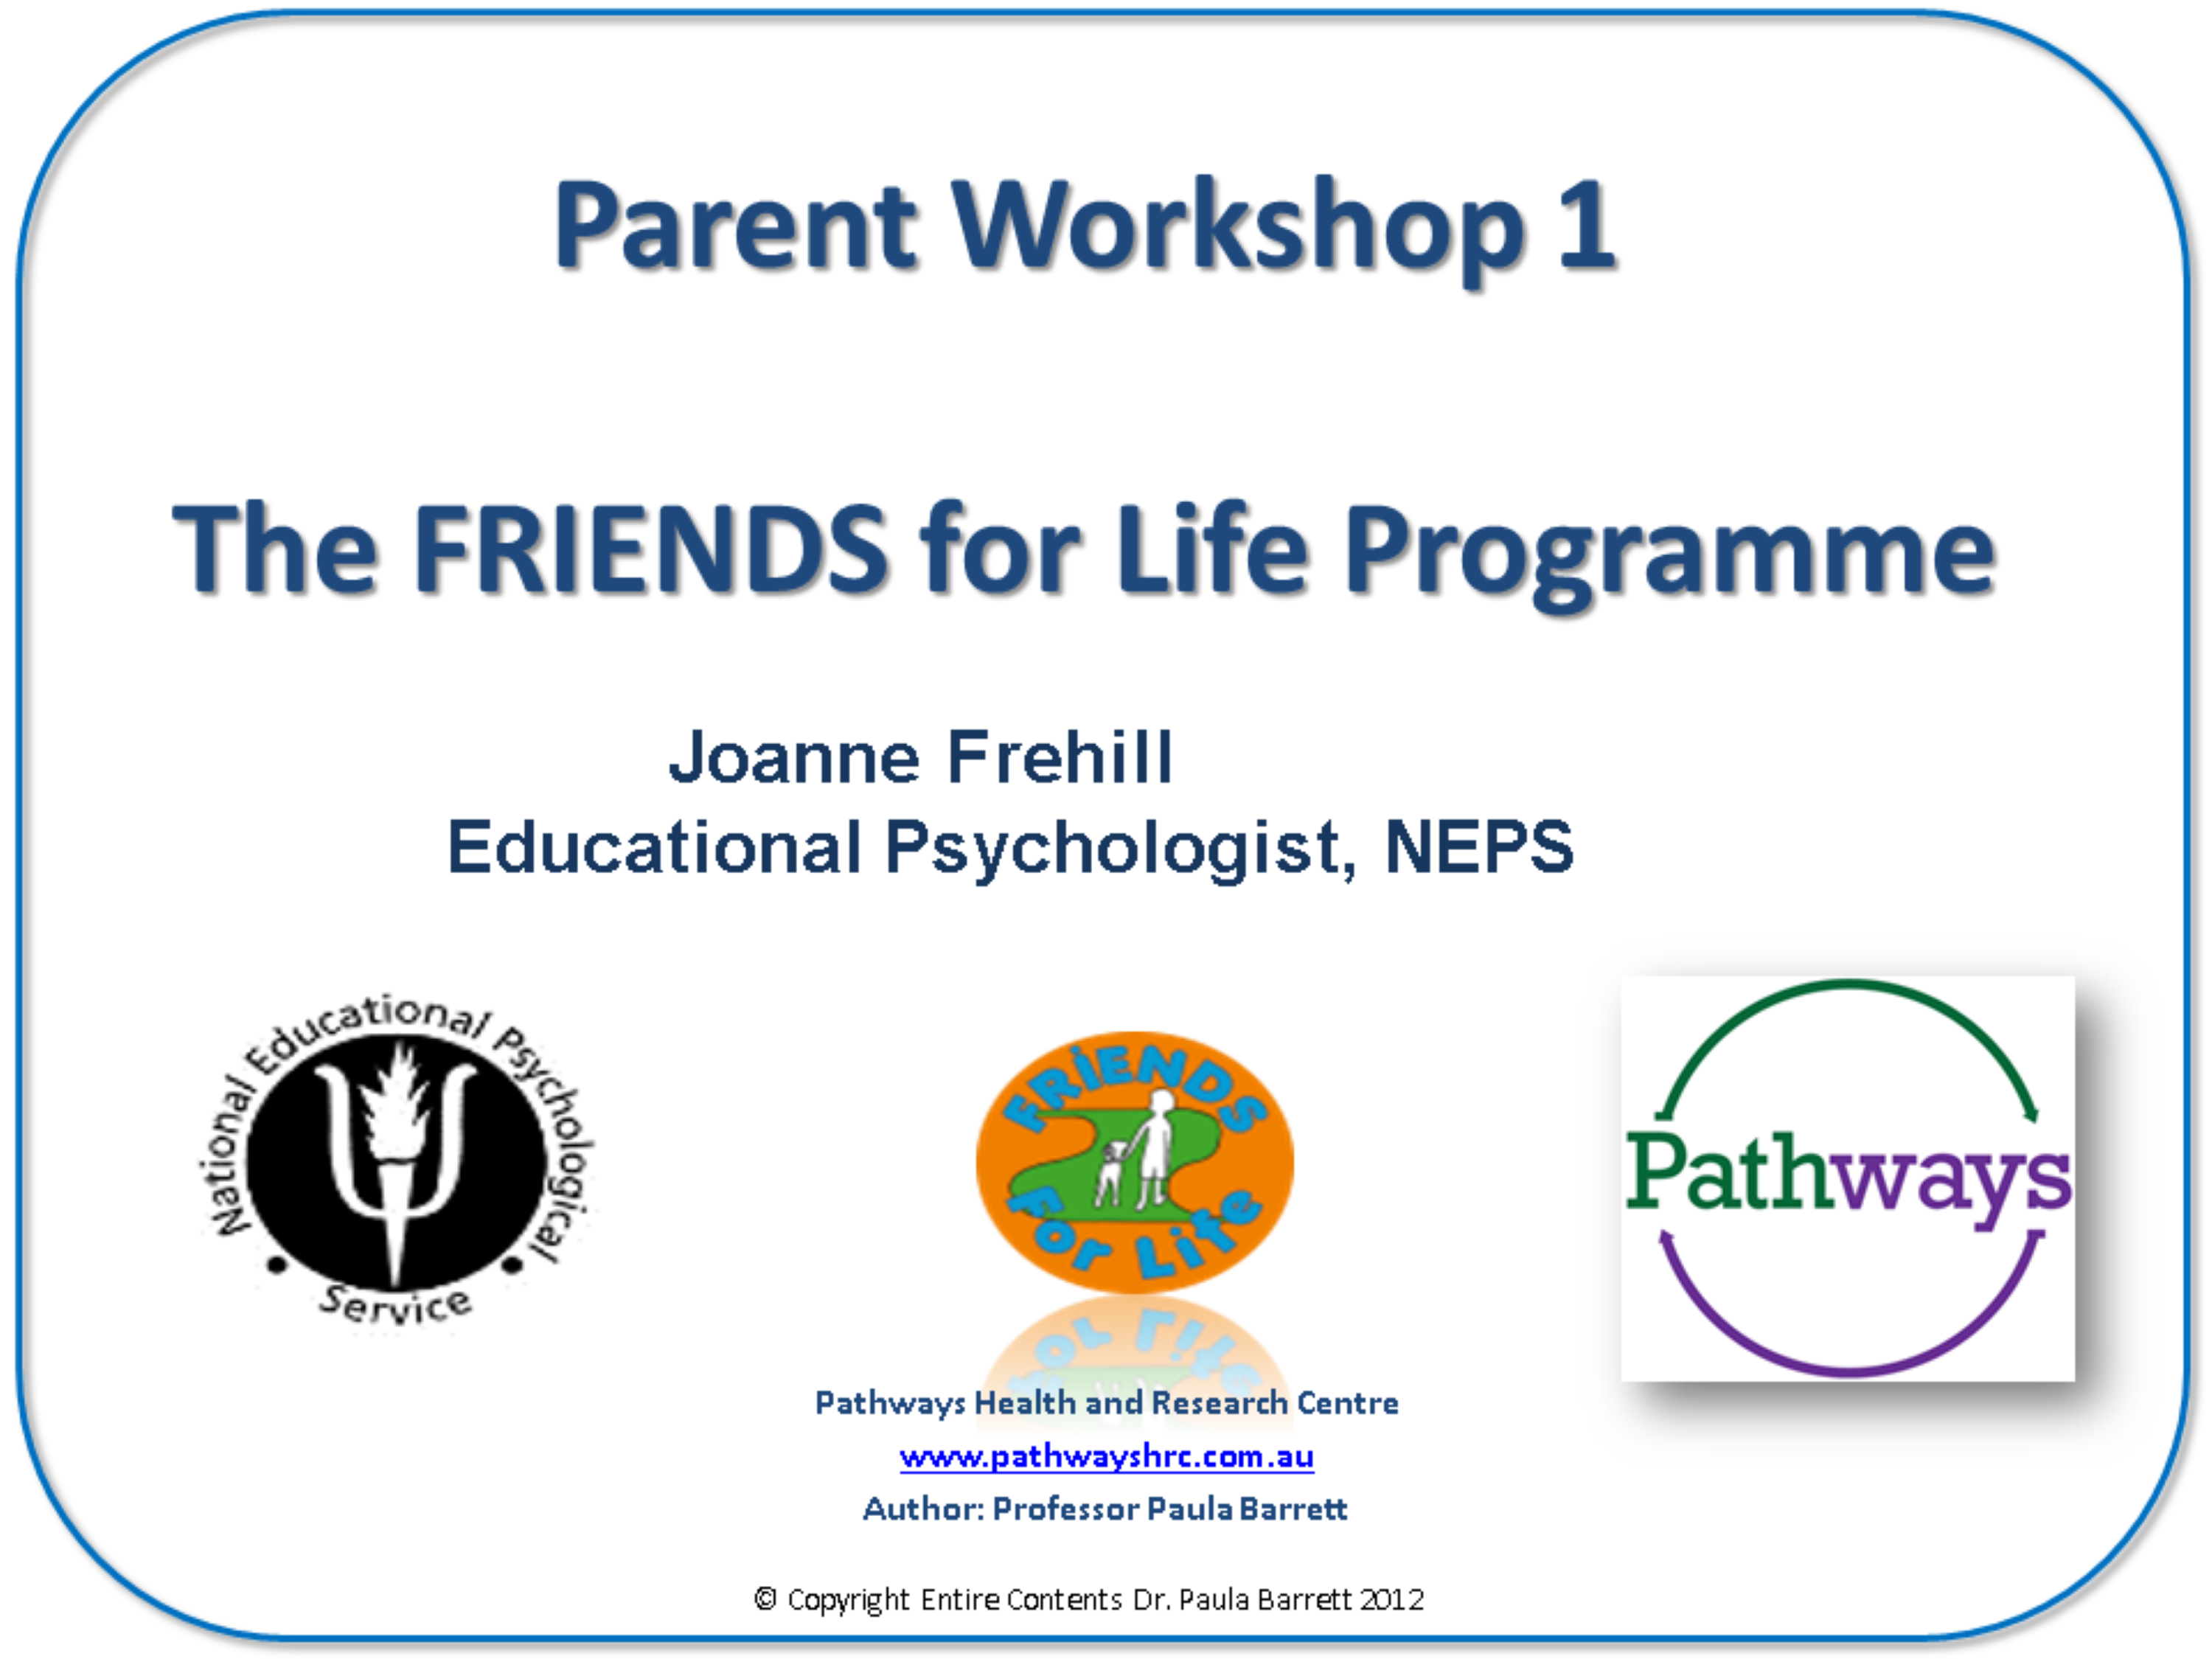 The Friends for Life Programme